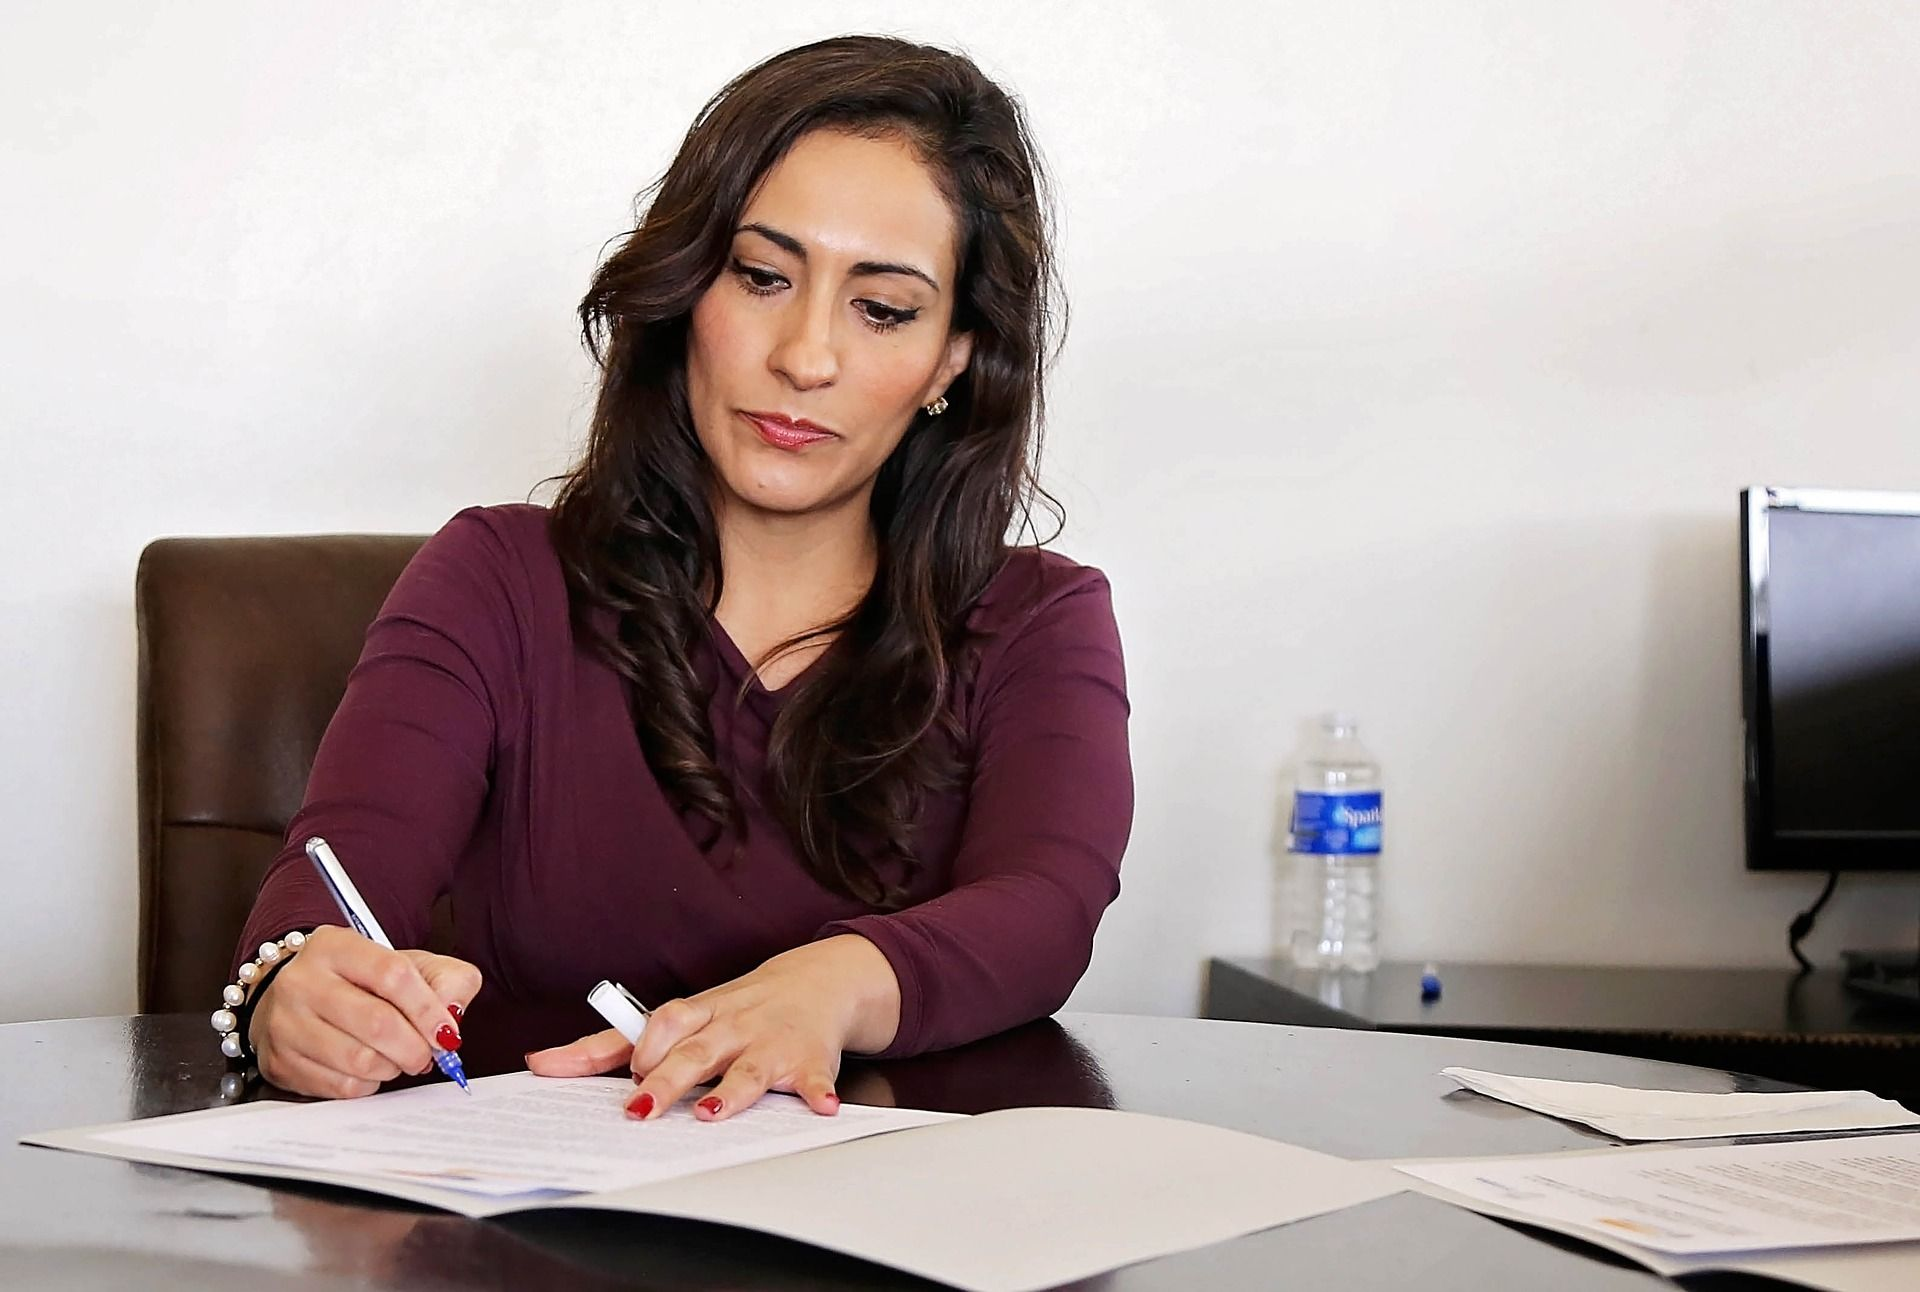 How Women Can Get What They Want in a Negotiation